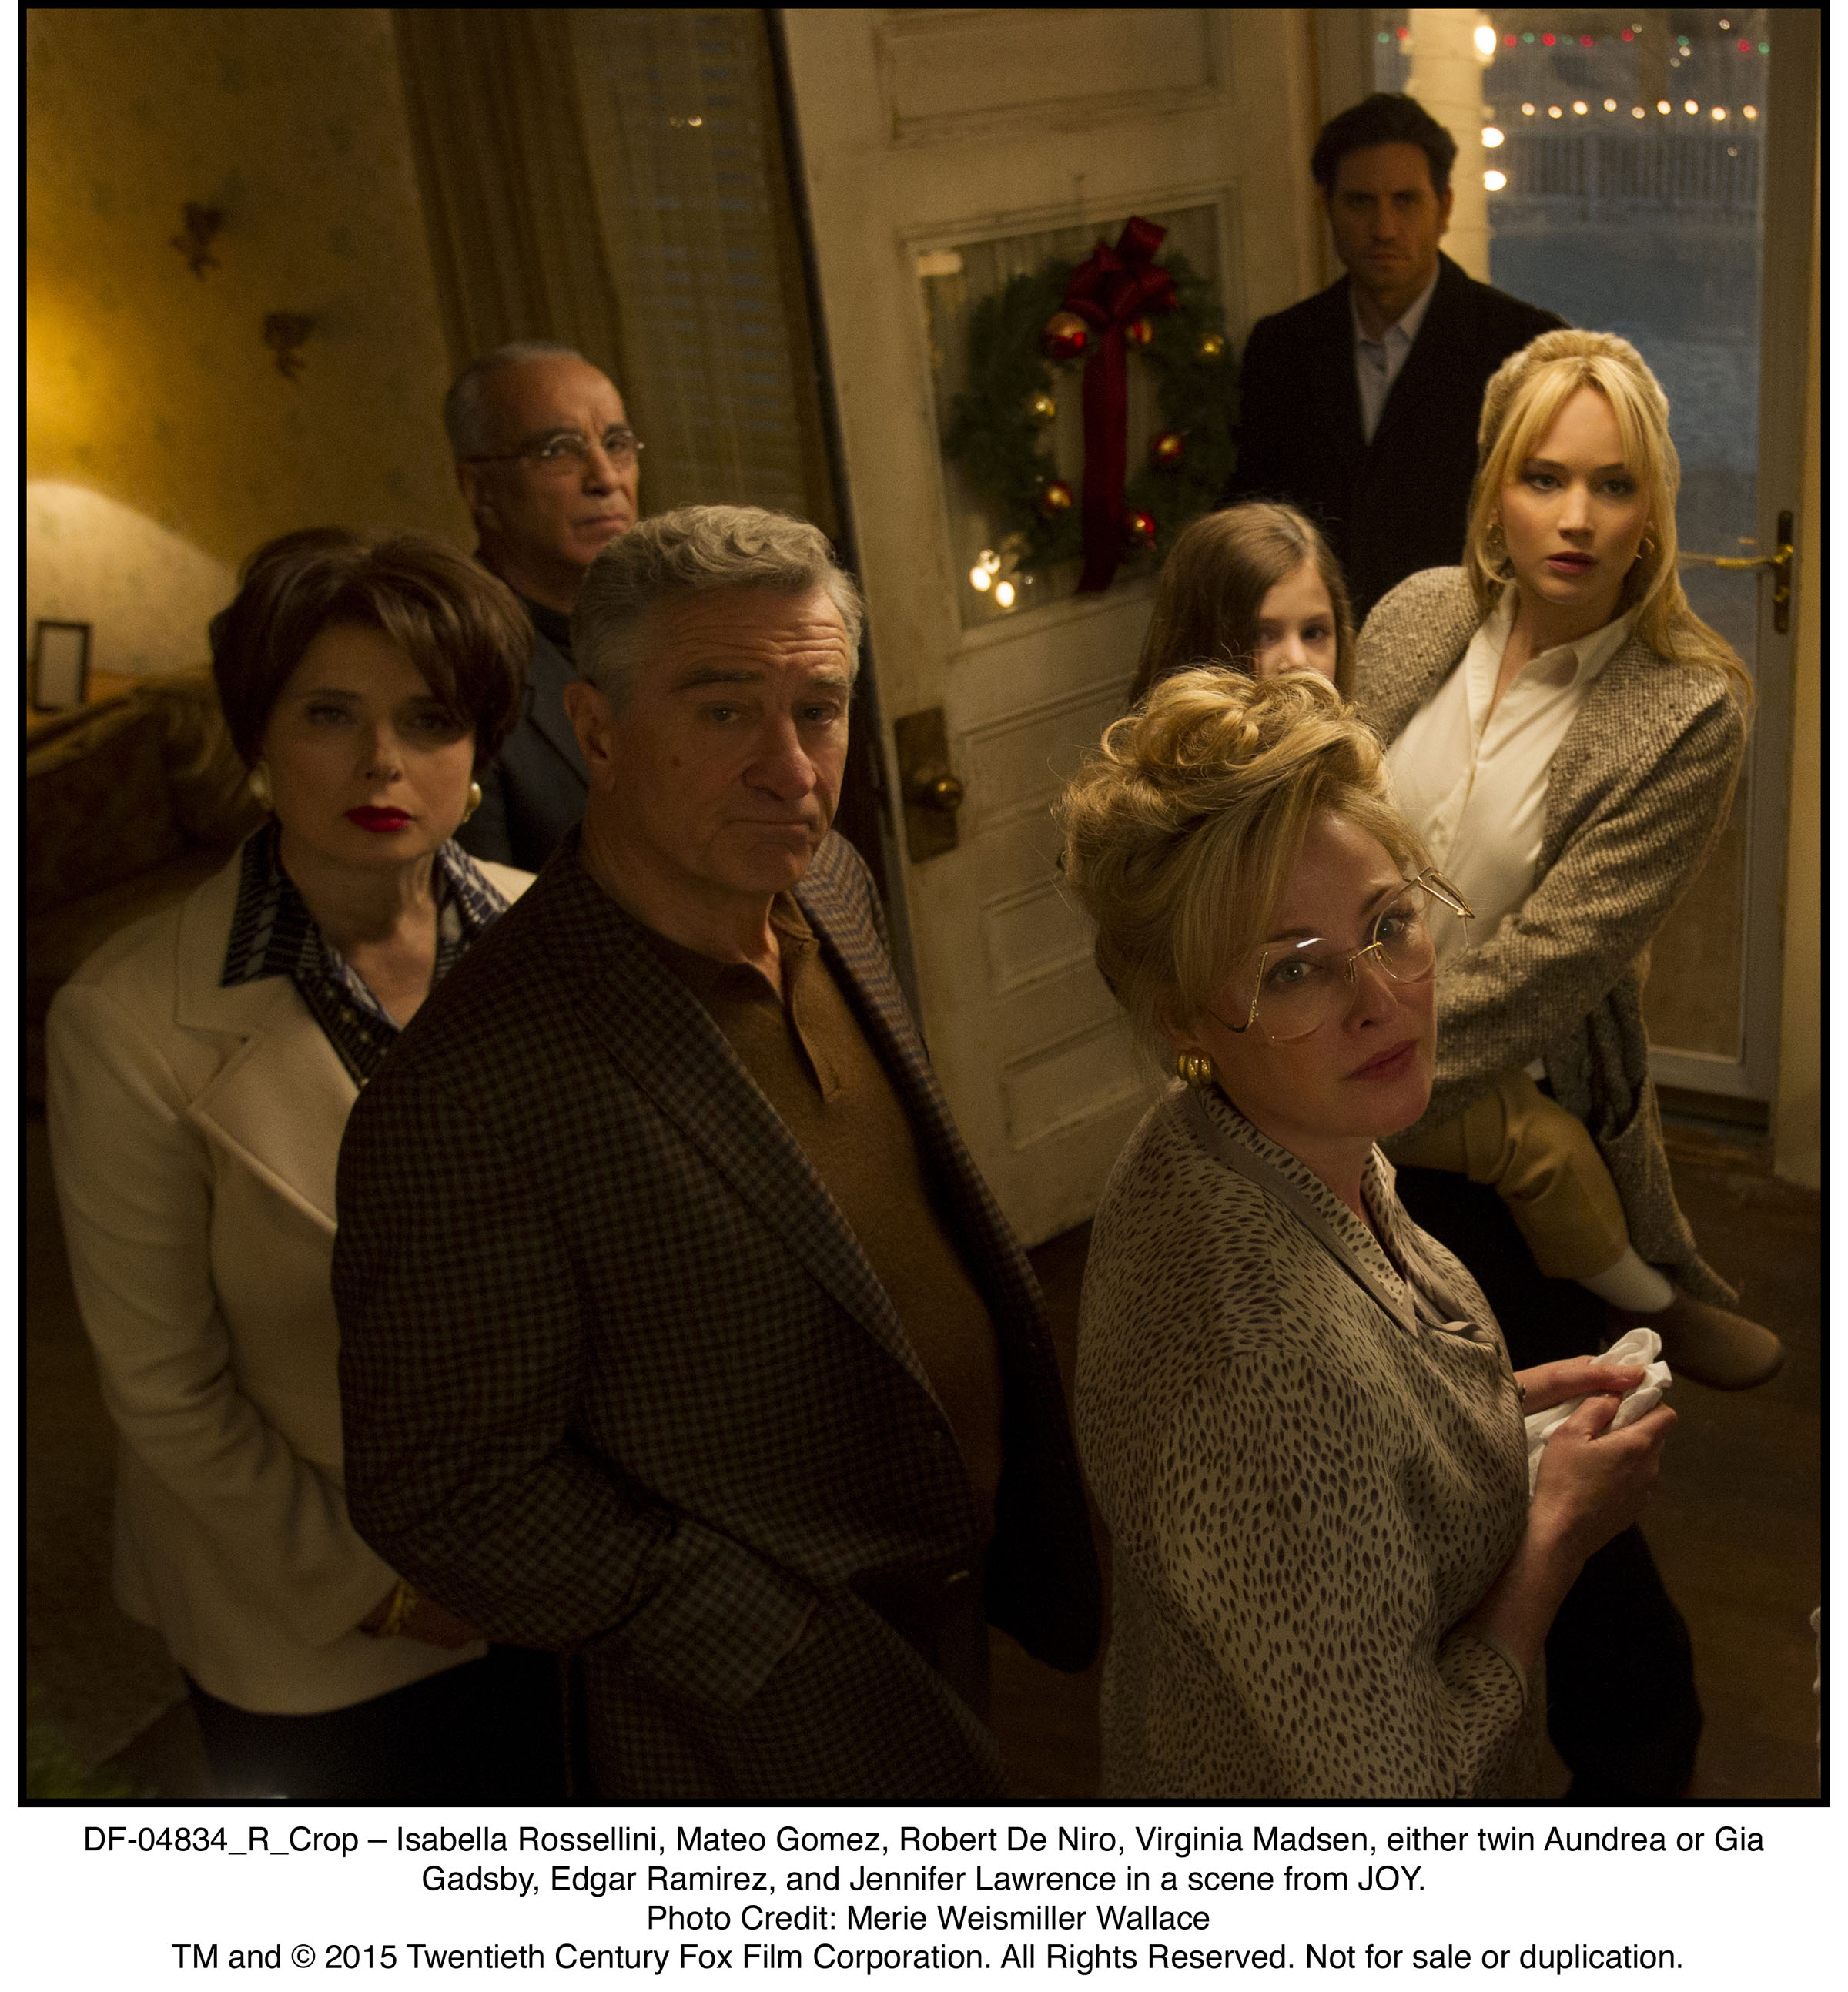 DF-04834_R_Crop – Isabella Rossellini, Mateo Gomez, Robert De Niro, Virginia Madsen, either twin Aundrea or Gia Gadsby, Edgar Ramirez, and Jennifer Lawrence in a scene from JOY.